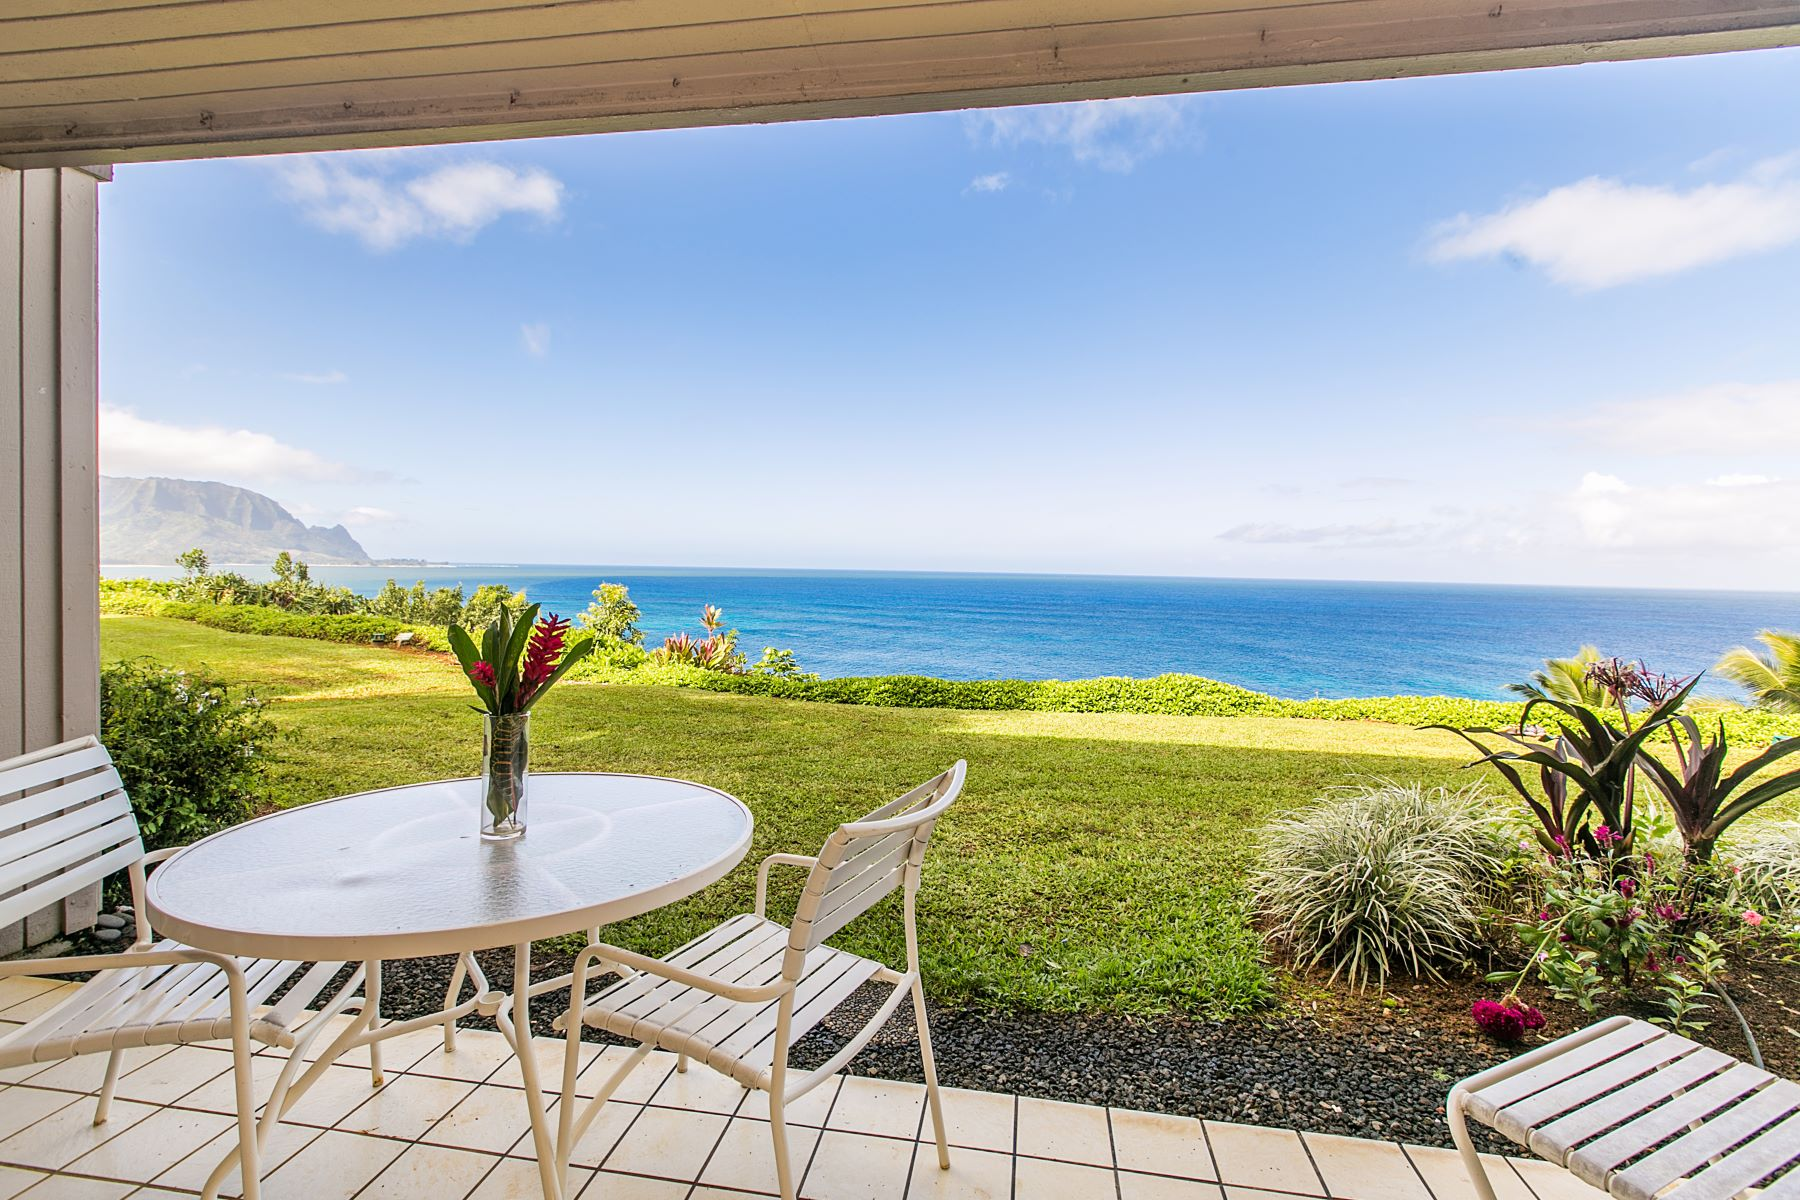 Condominium for Sale at Pali Ke Kua II 5300 Ka Haku Road #119 Princeville, Hawaii 96722 United States